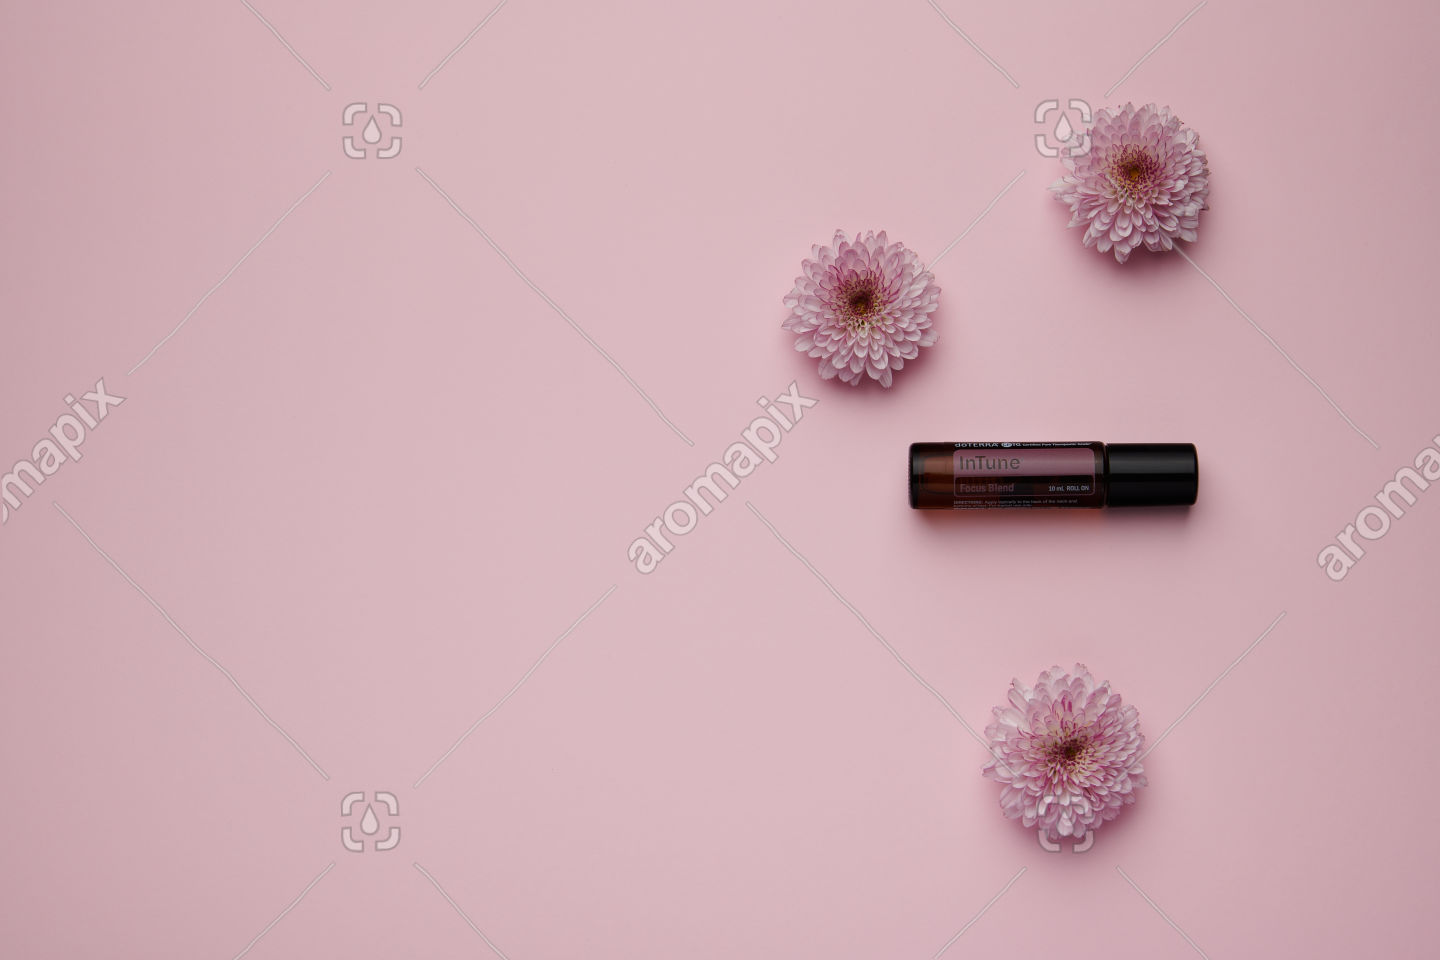 doTERRA InTune with flowers on pink